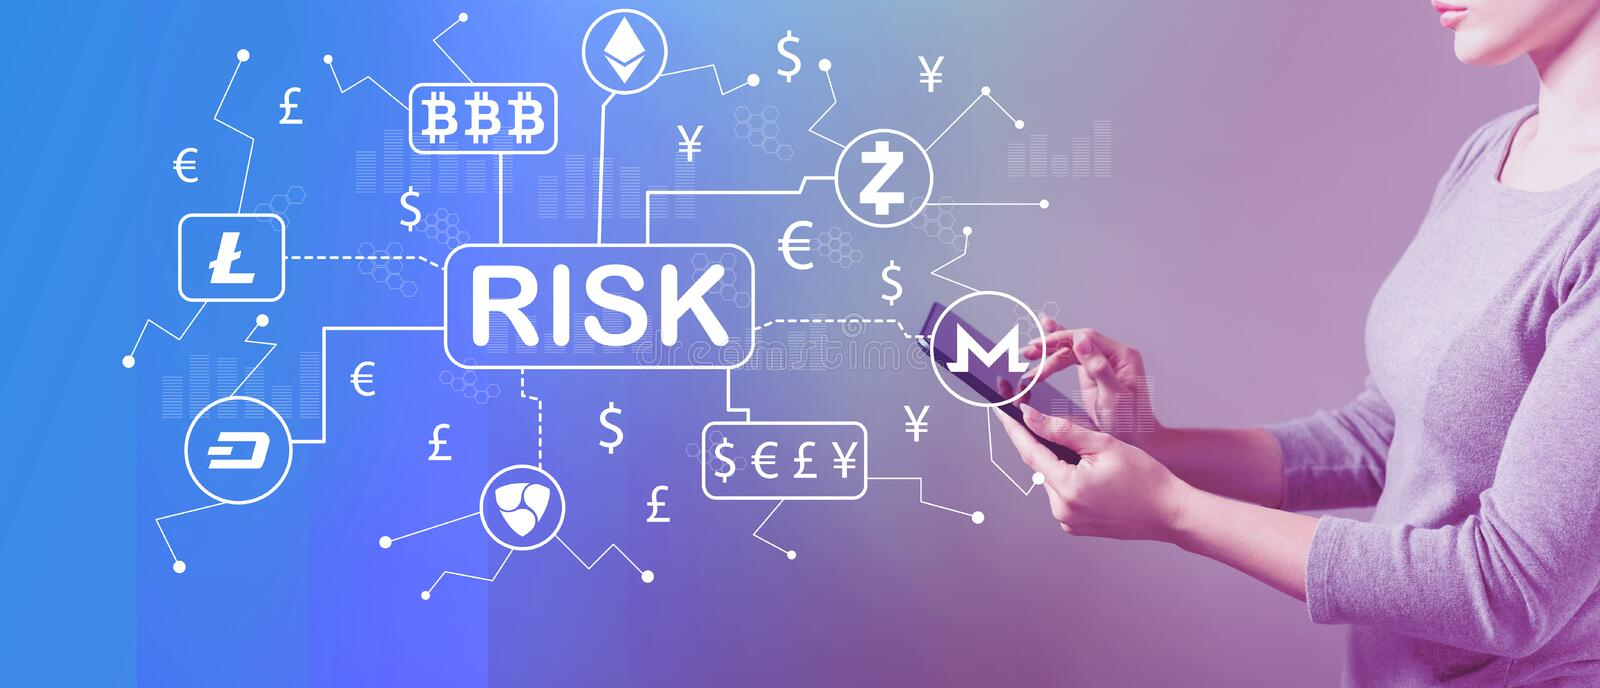 Cryptocurrency ICO risk theme with woman using a tablet. Cryptocurrency ICO risk theme with business woman using a tablet computer royalty free illustration